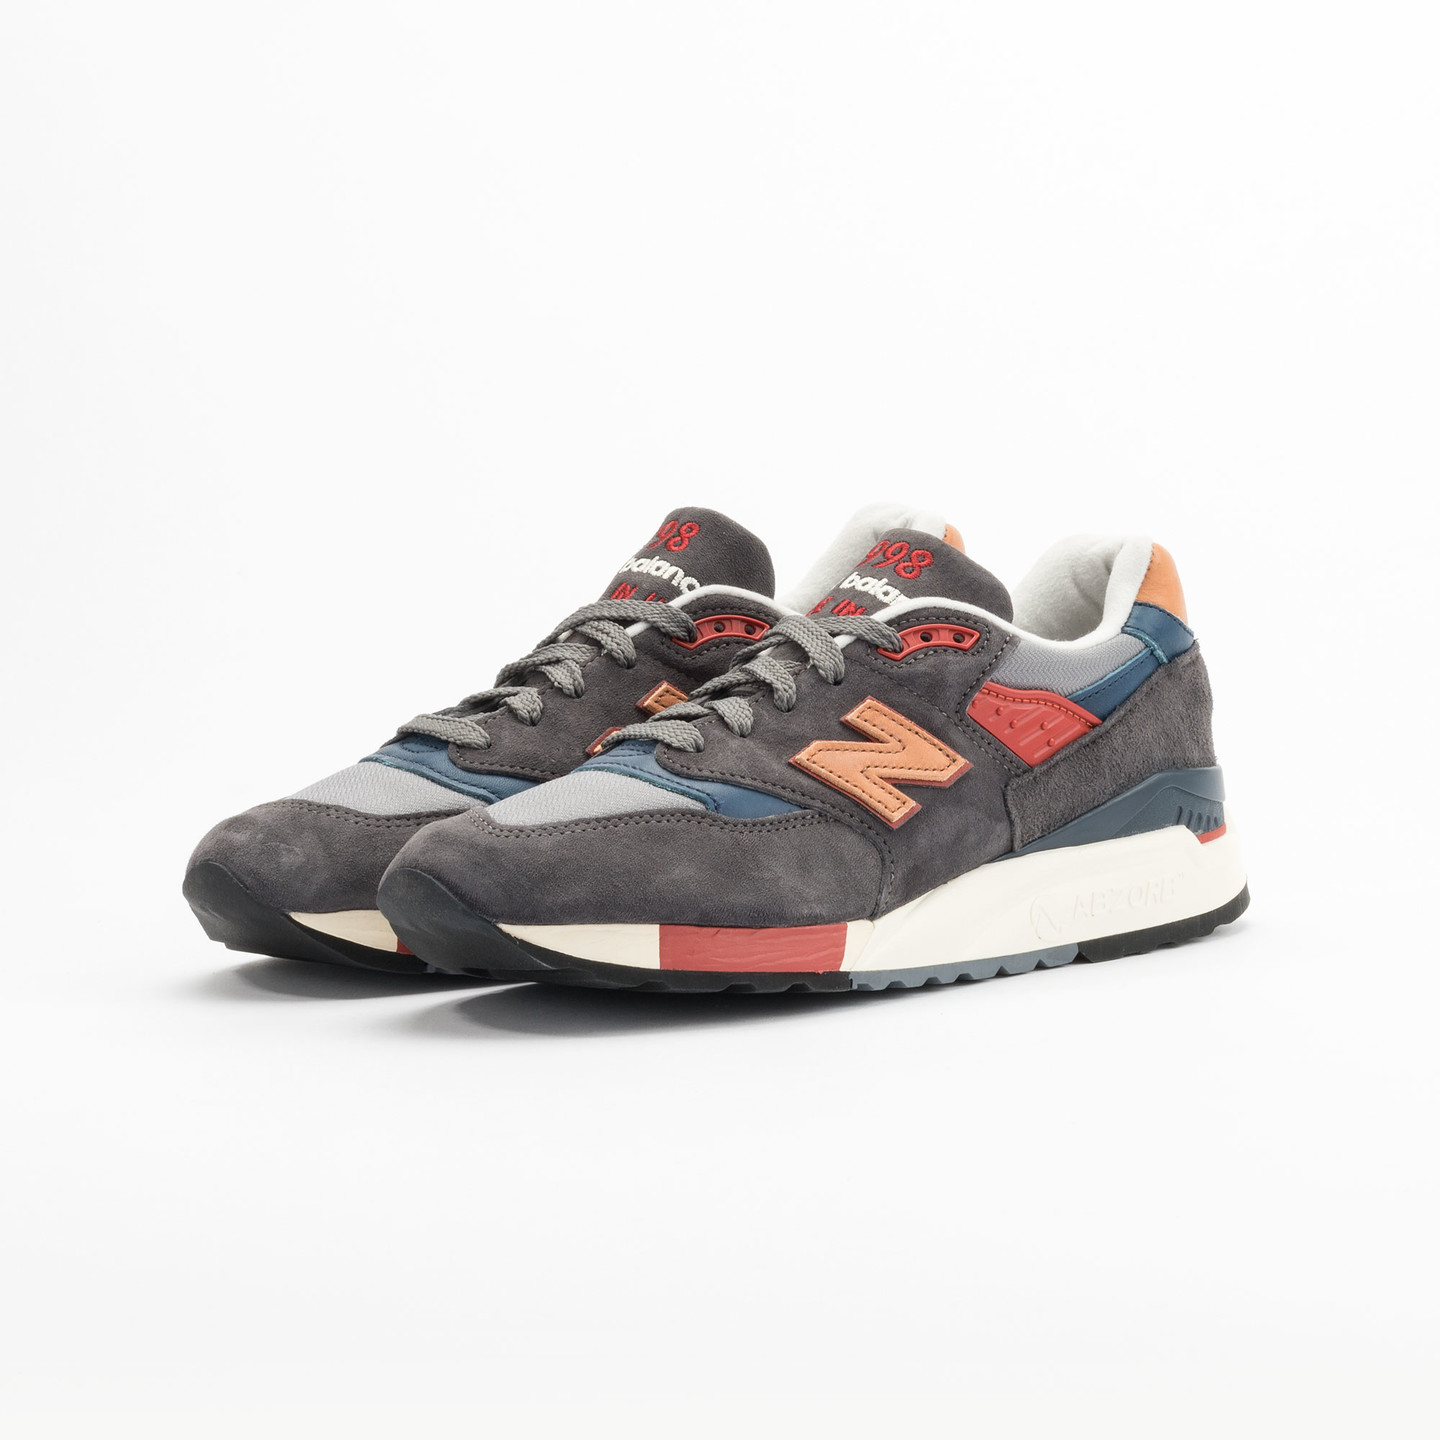 New Balance M998 Made in USA Dark Grey / Beige / Red / Navy M998DBR-42